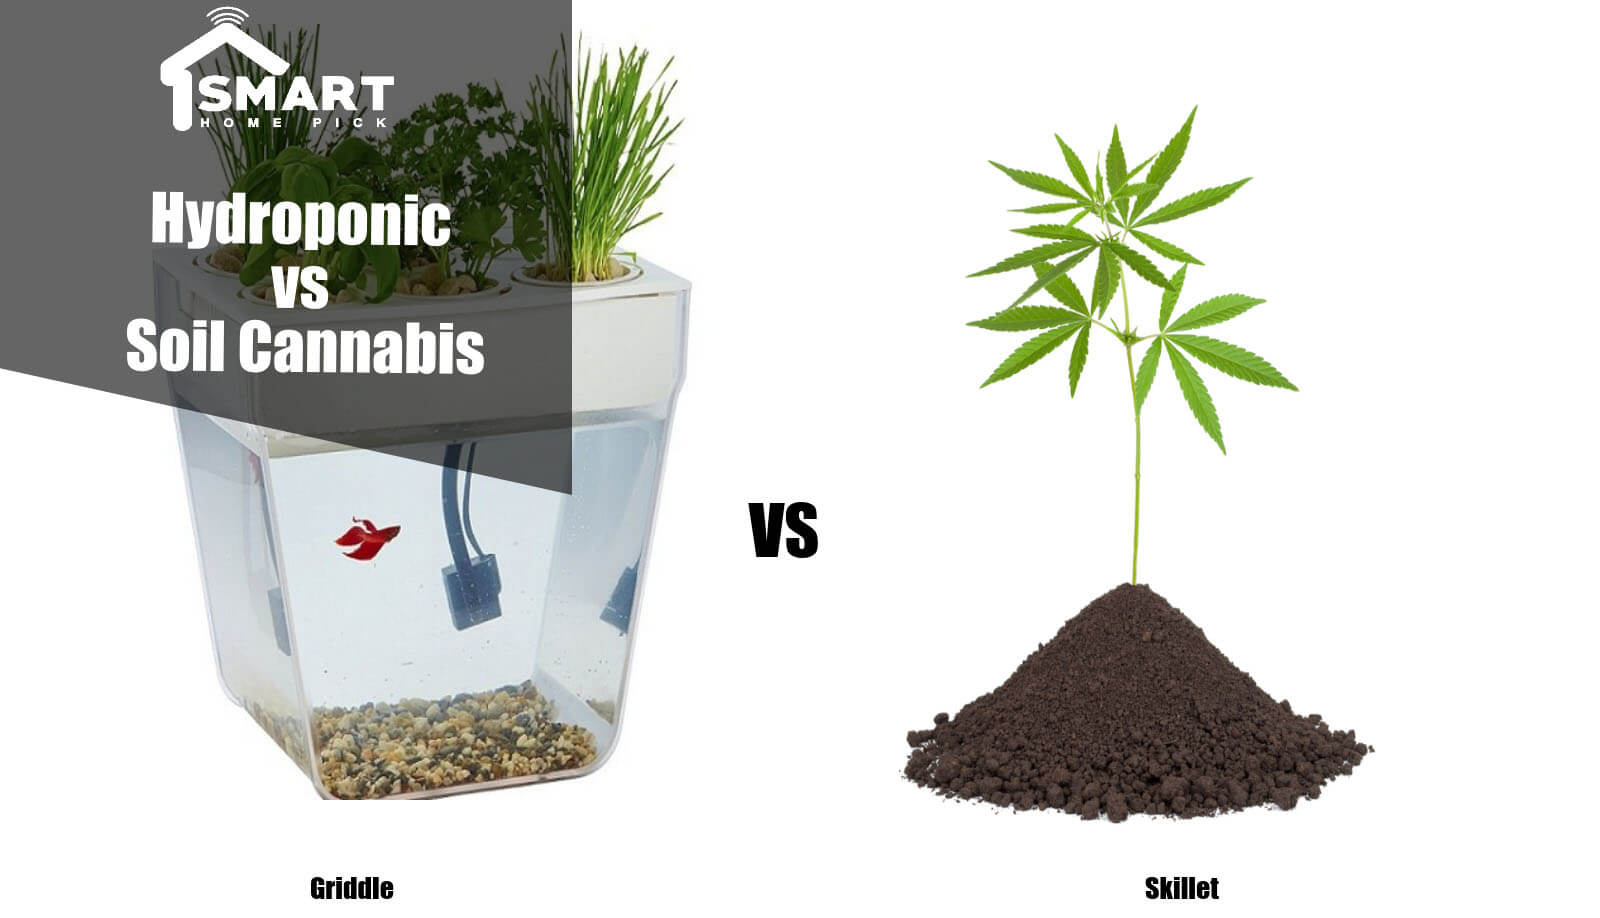 Hydroponic vs Soil Cannabis